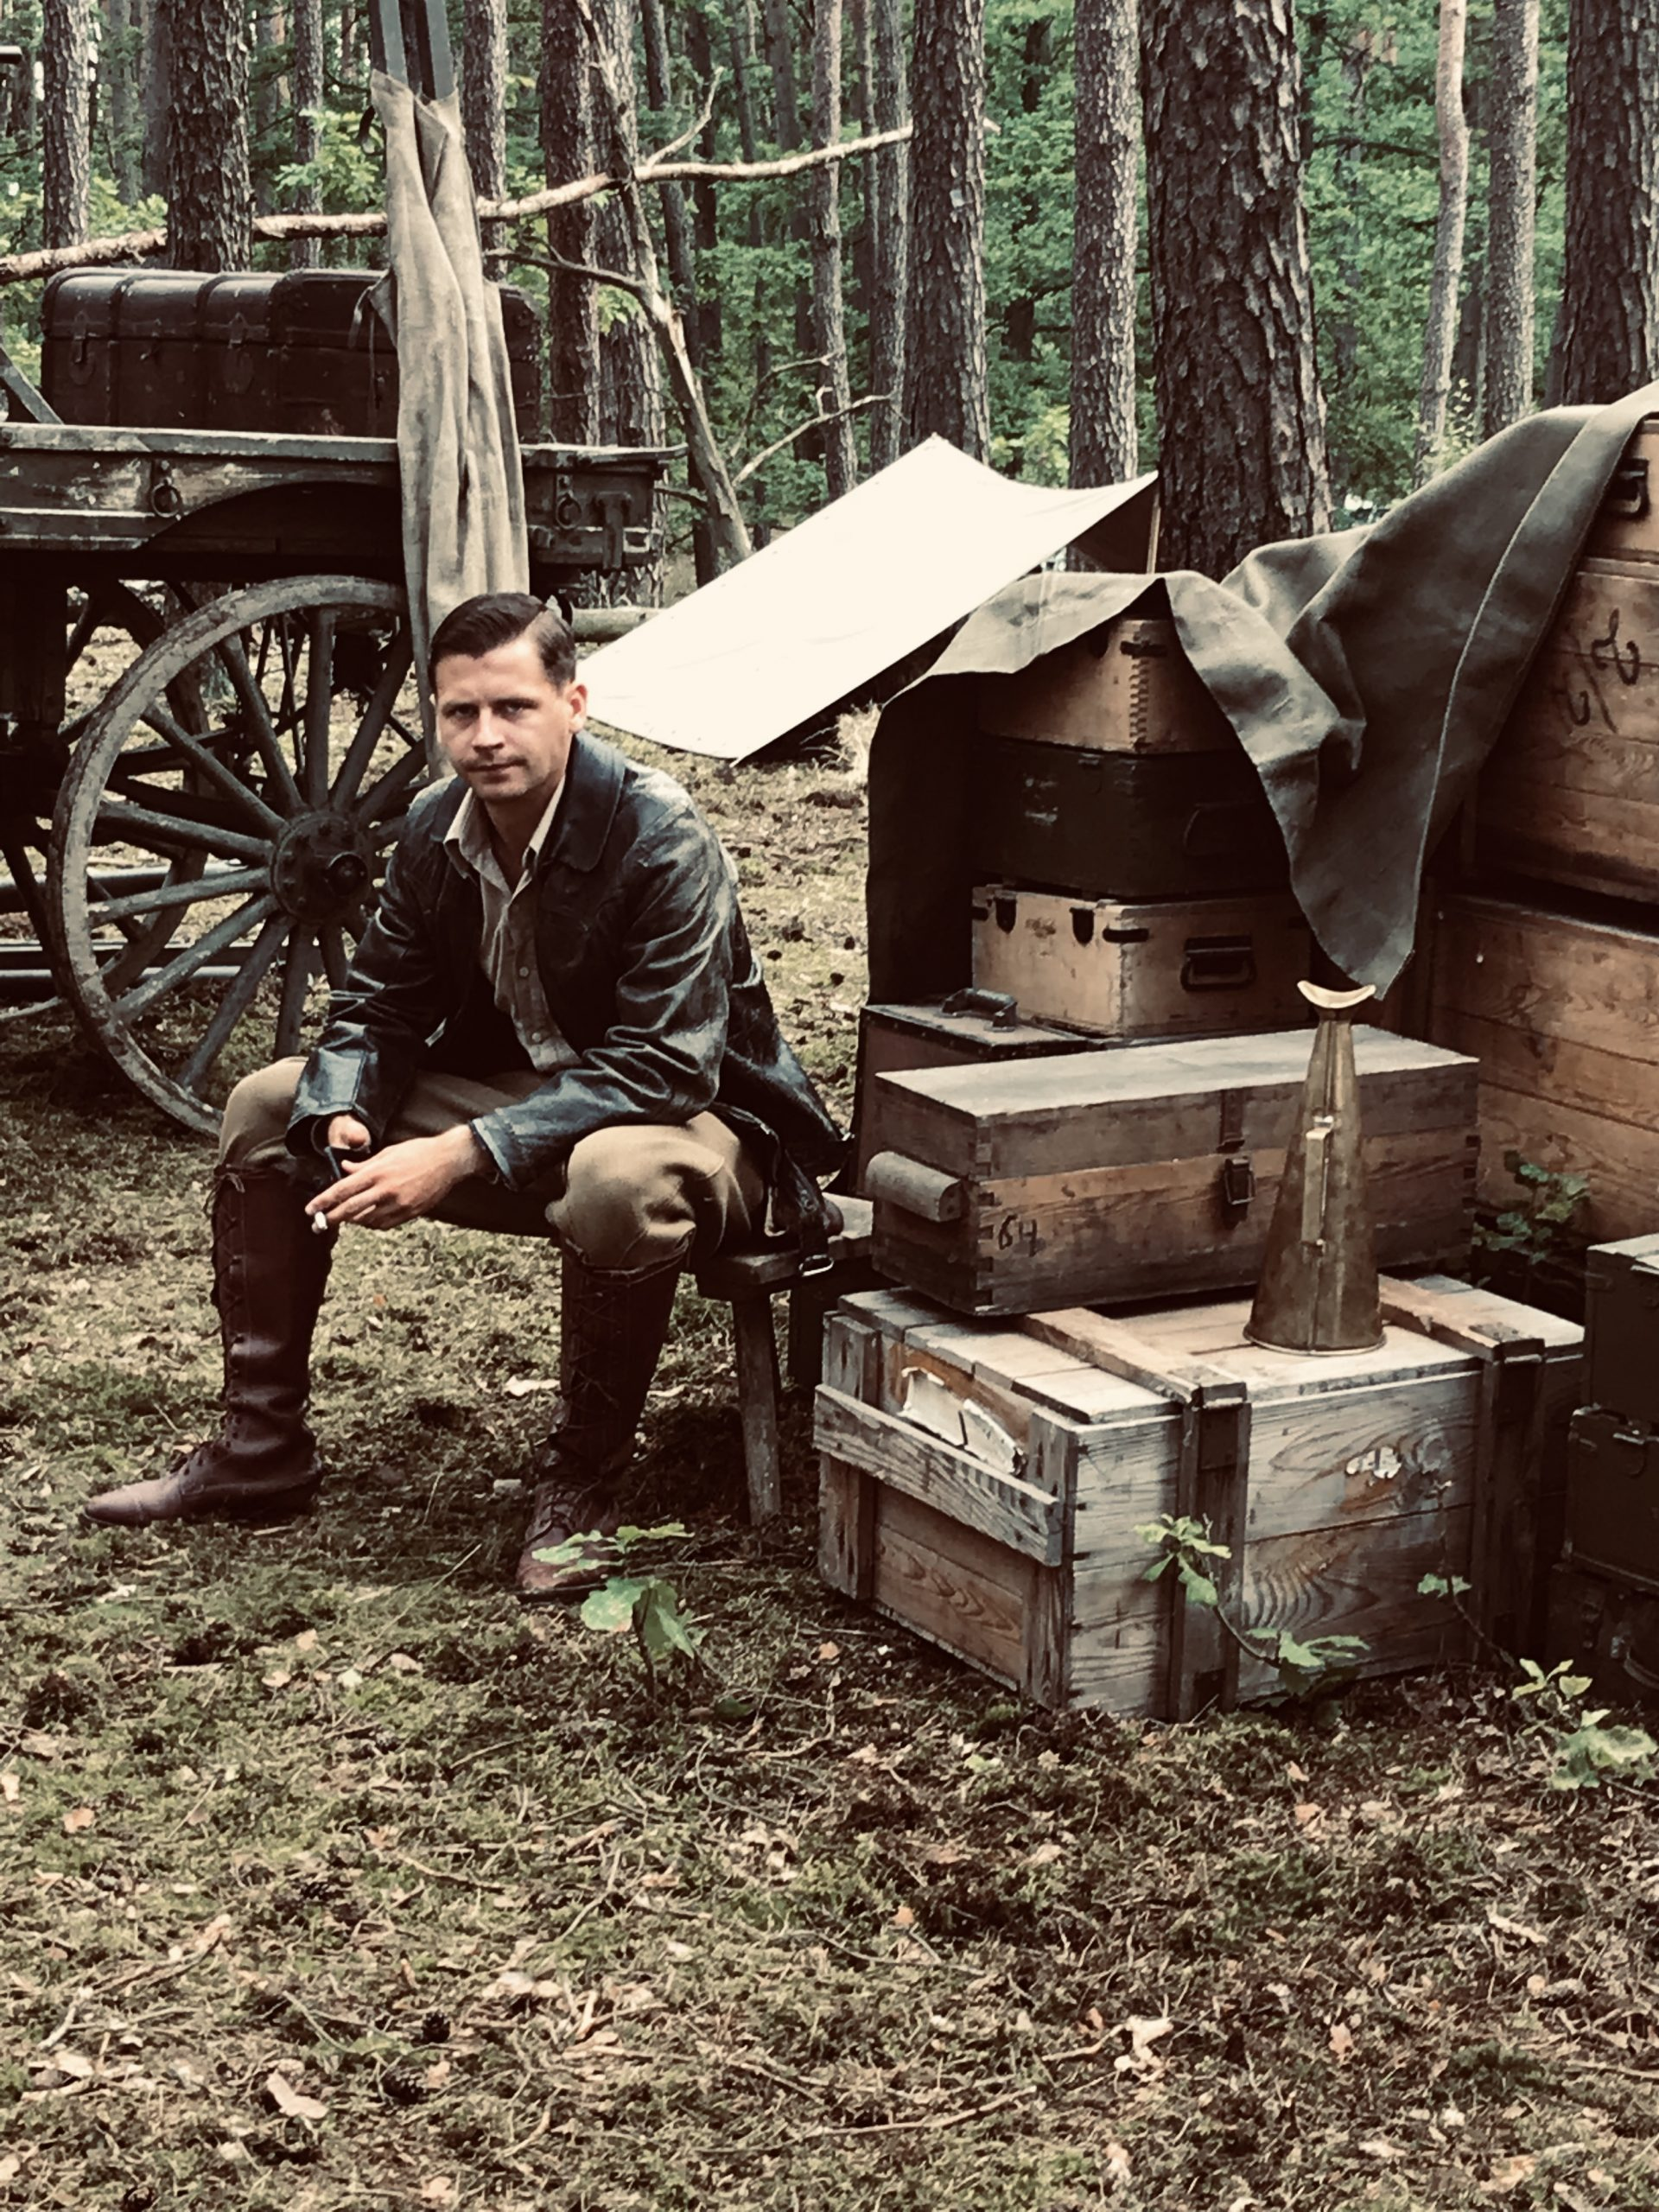 Description: A man in an early 20th century costume sitting in a forest on a stool next to stacked chests; in the background, part of a wagon is visible